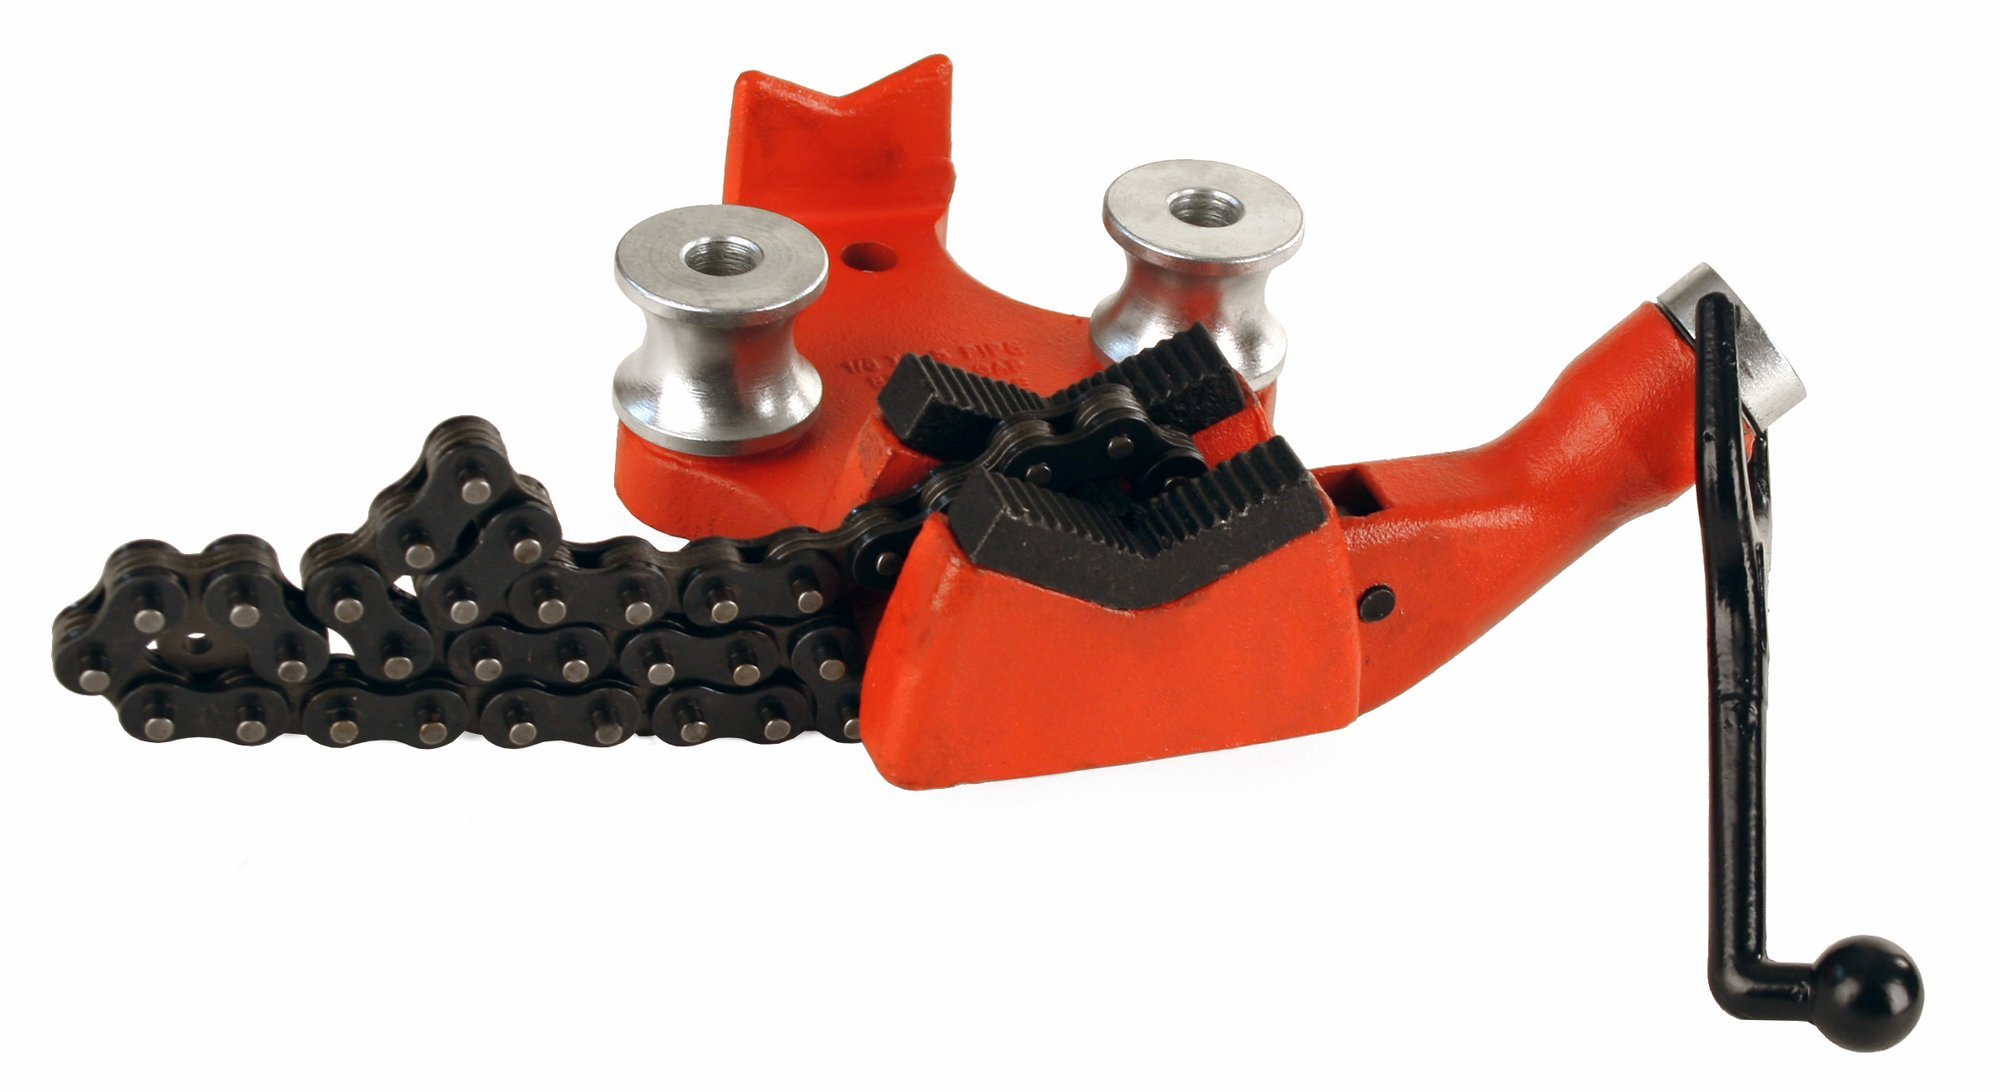 Toledo Pipe BC 610 fits RIDGID 40210 Heavier Duty Screw Bench Chain Vise BC 510 by Toledo Pipe Tools